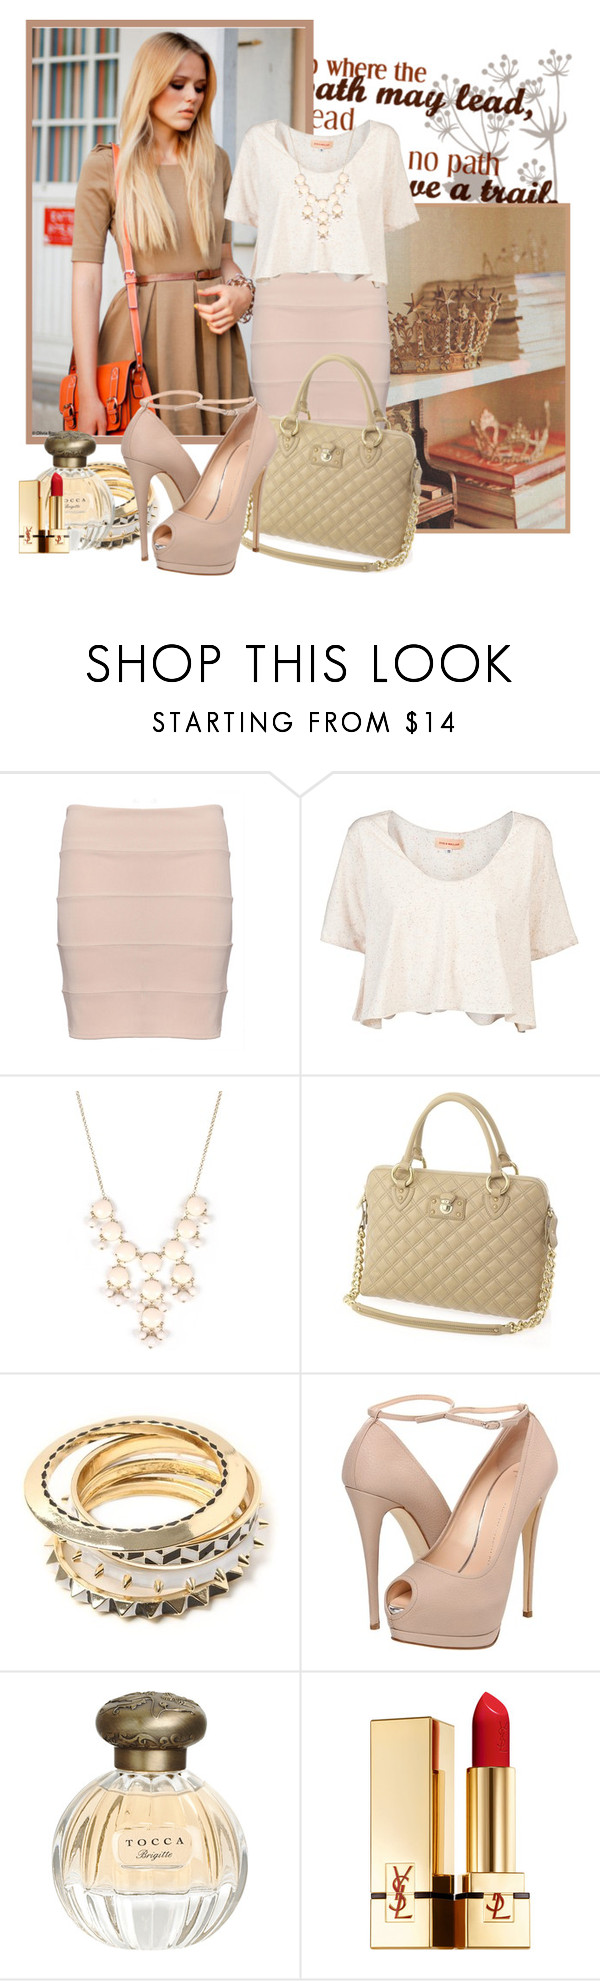 """""""10."""" by medinaa ❤ liked on Polyvore featuring Fabi, Otis & Maclain, Marc Jacobs, Giuseppe Zanotti, Tocca and Yves Saint Laurent"""